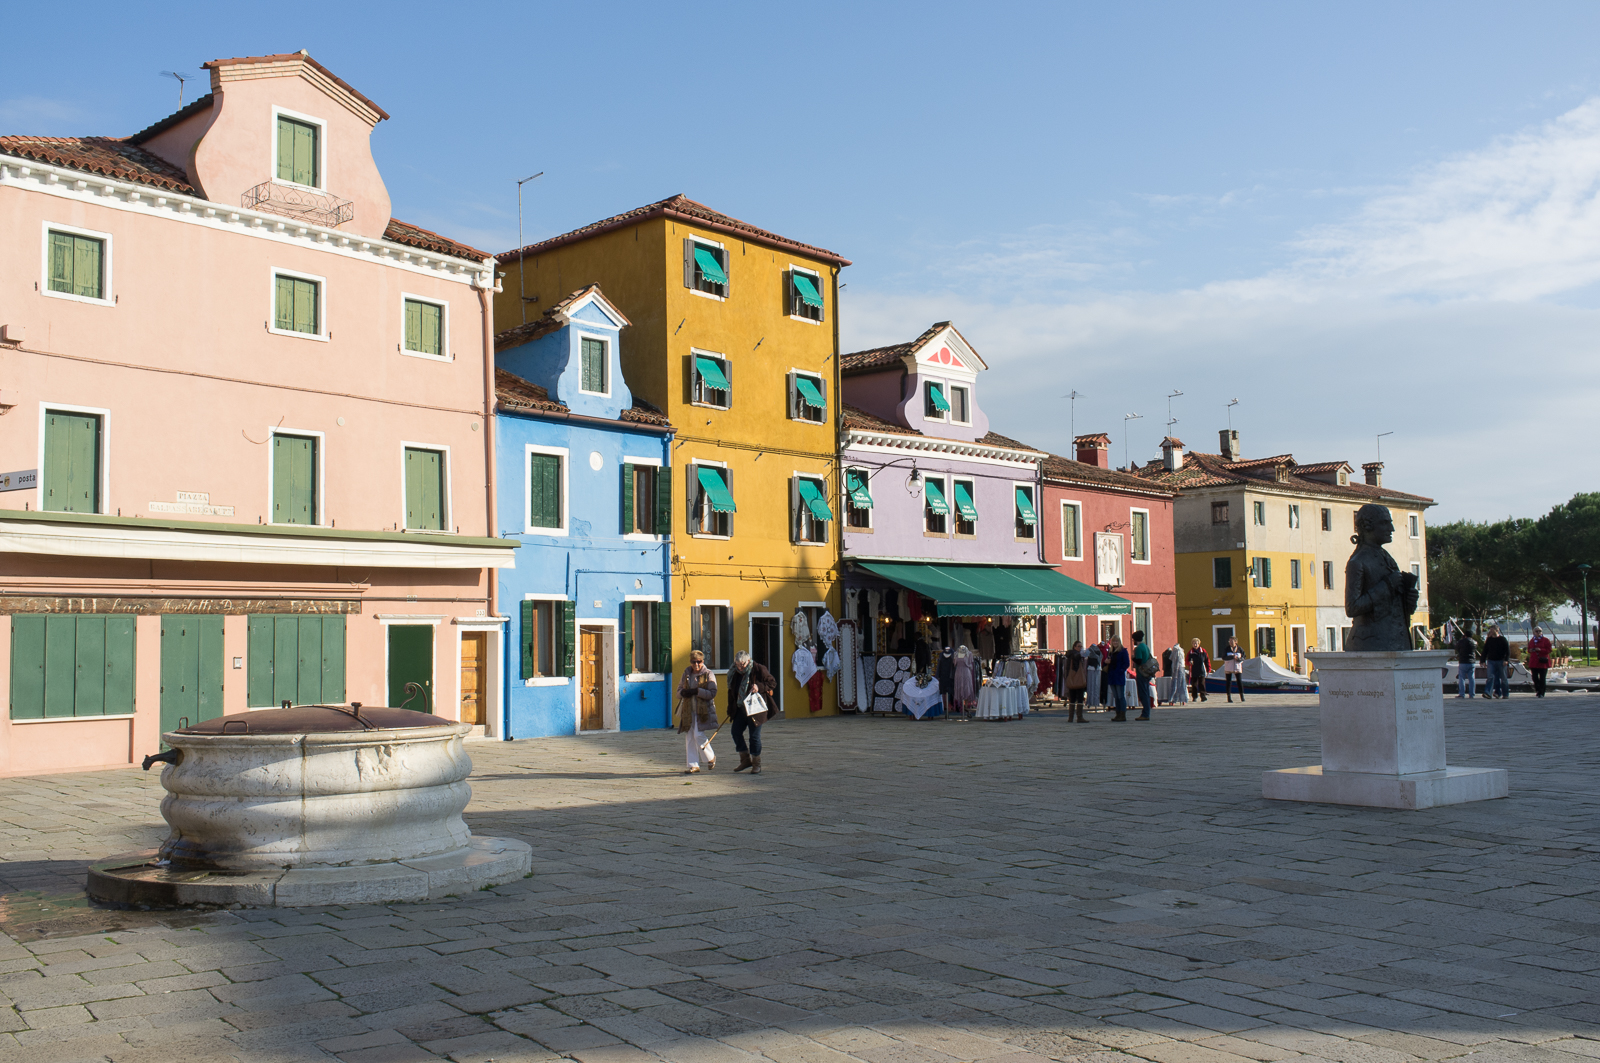 Characteristic houses at Piazza Galuppi